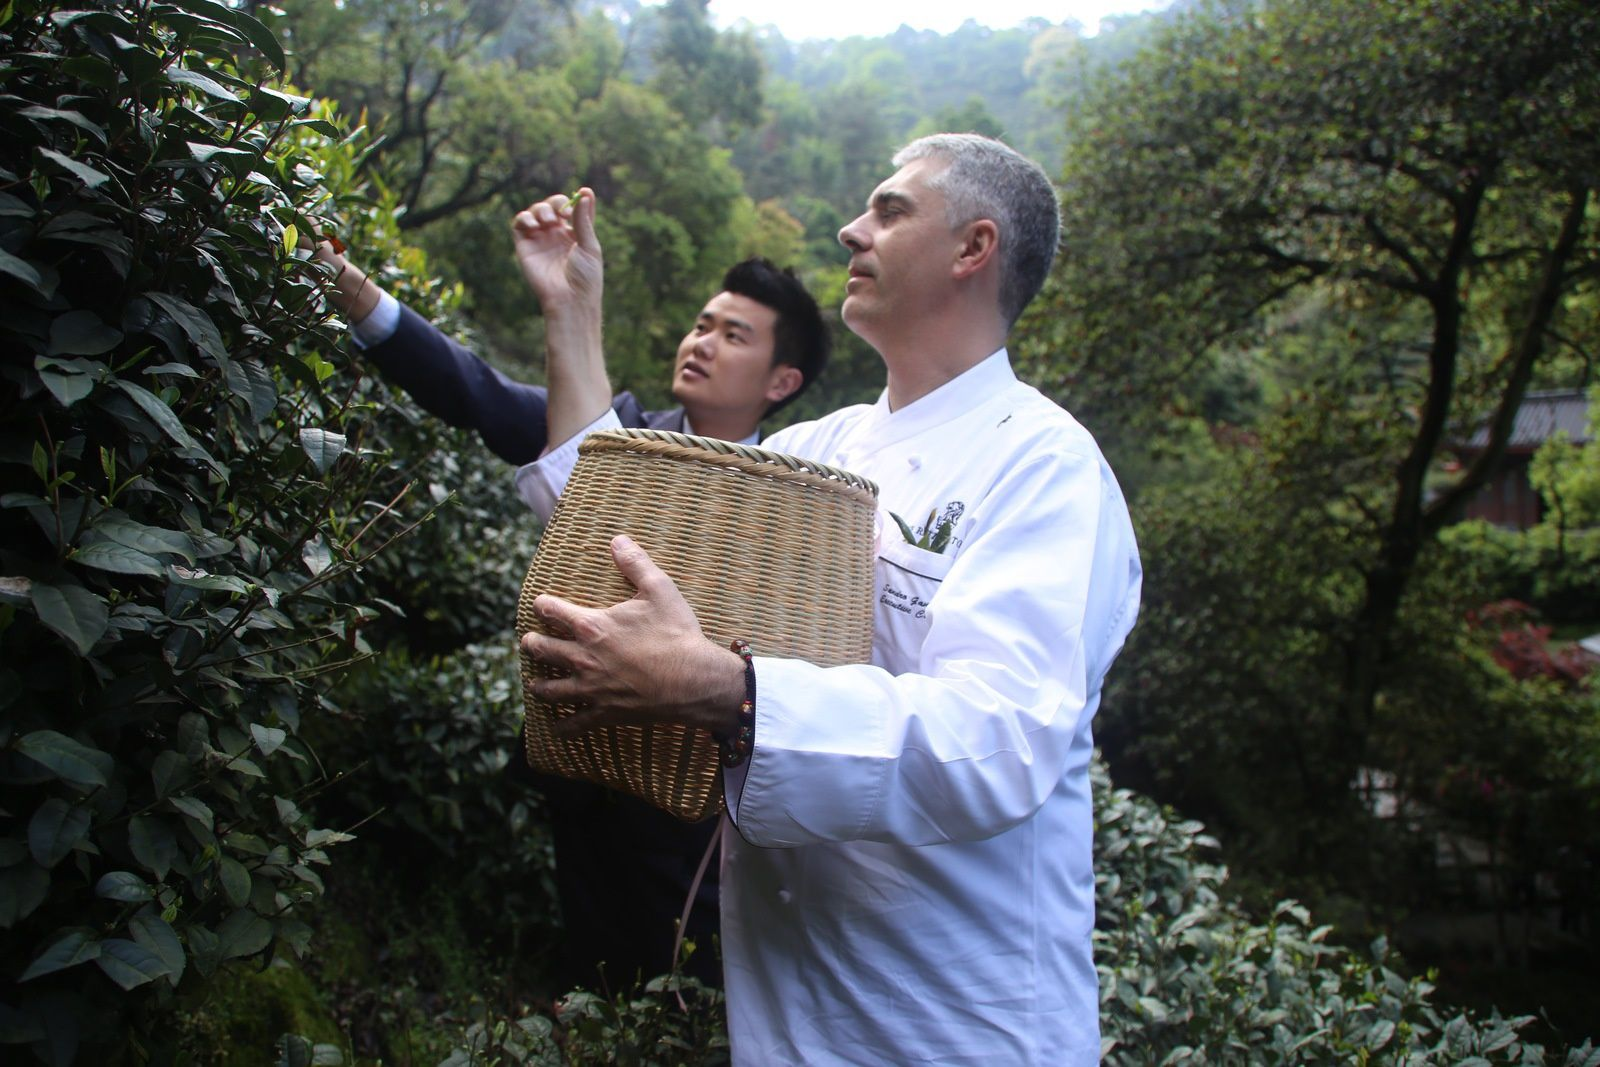 The Chef looking for the best Green Tea Leaves in China